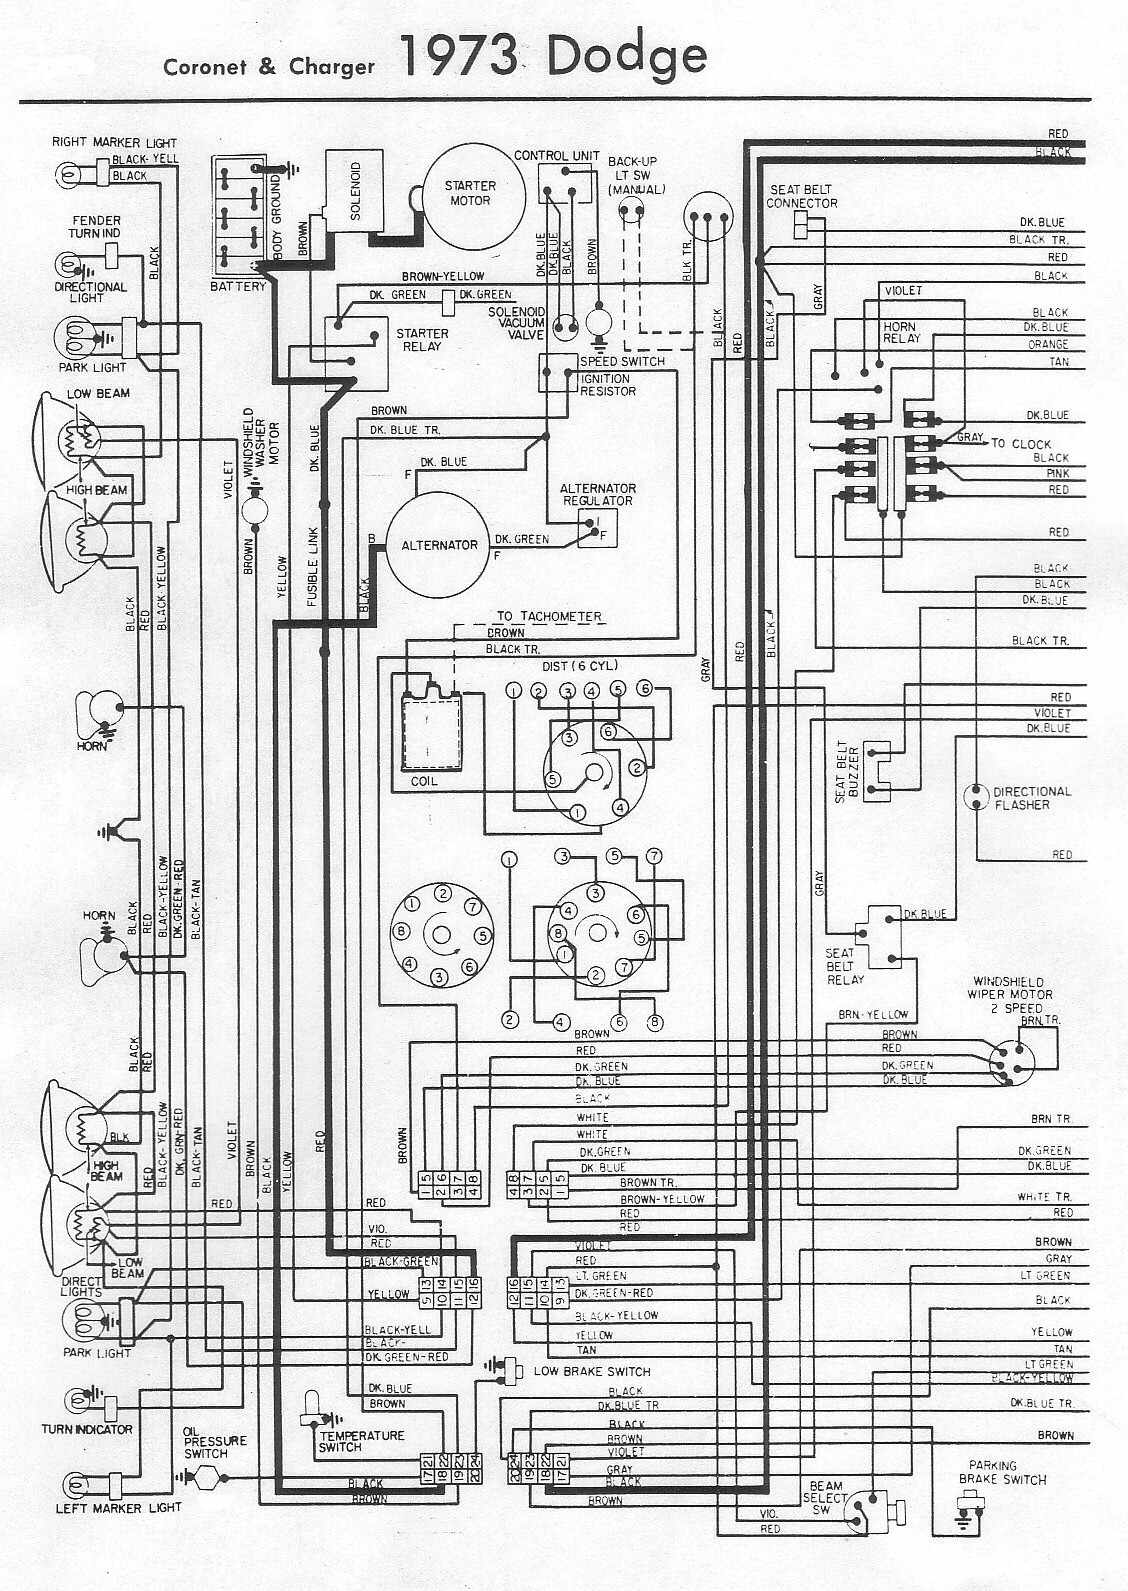 1973 cuda wiring diagram 1971 cuda wiring diagram #7